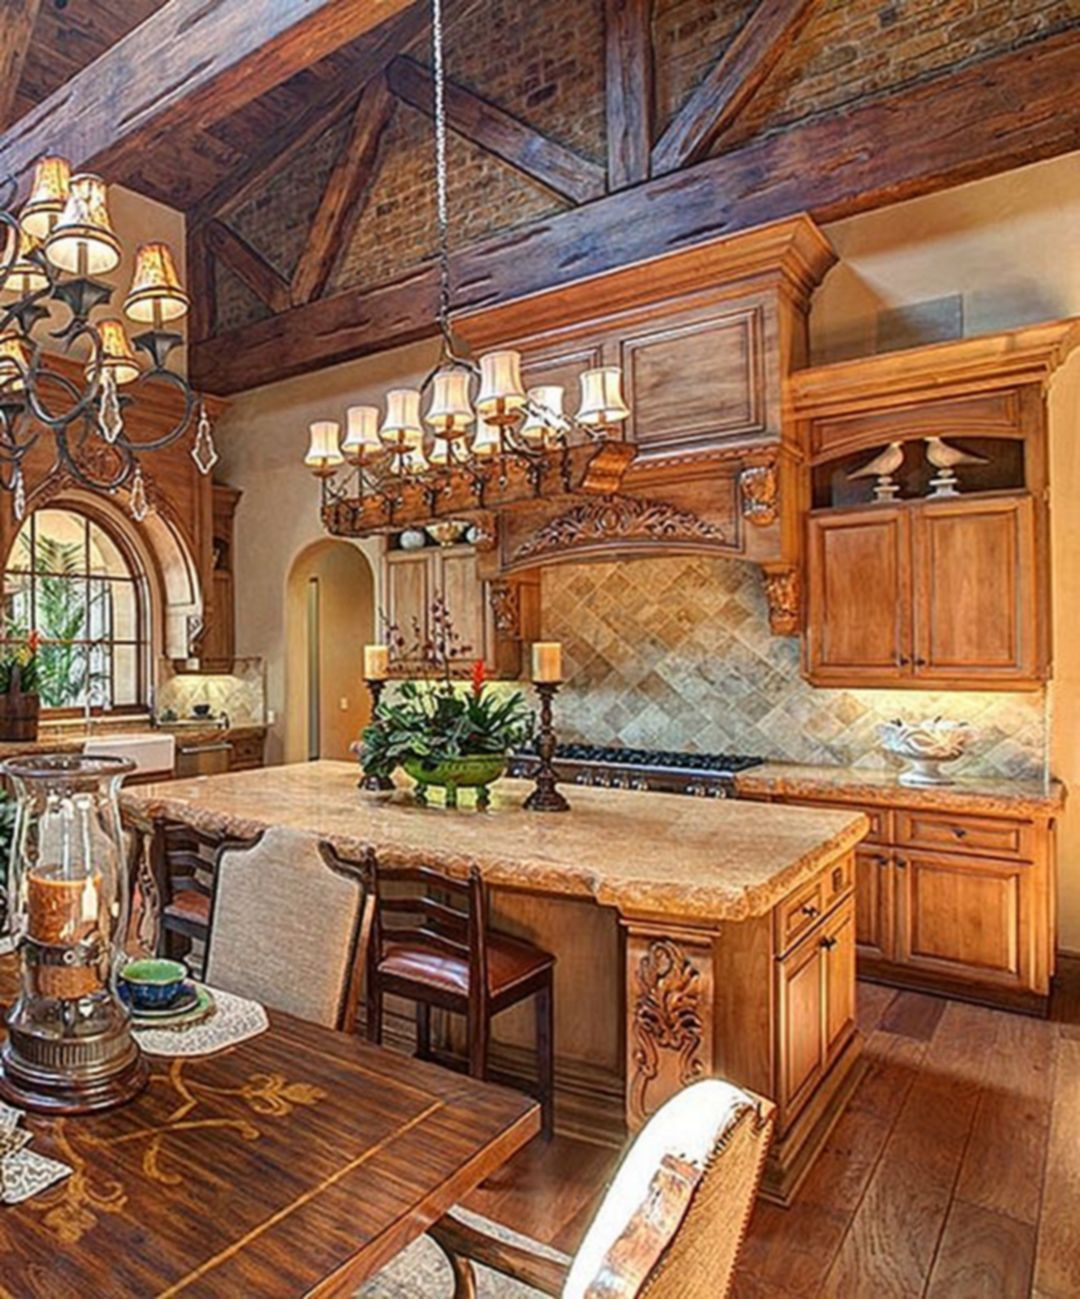 9+ Wonderful Italian Rustic Kitchen Decorating Ideas To Inspire